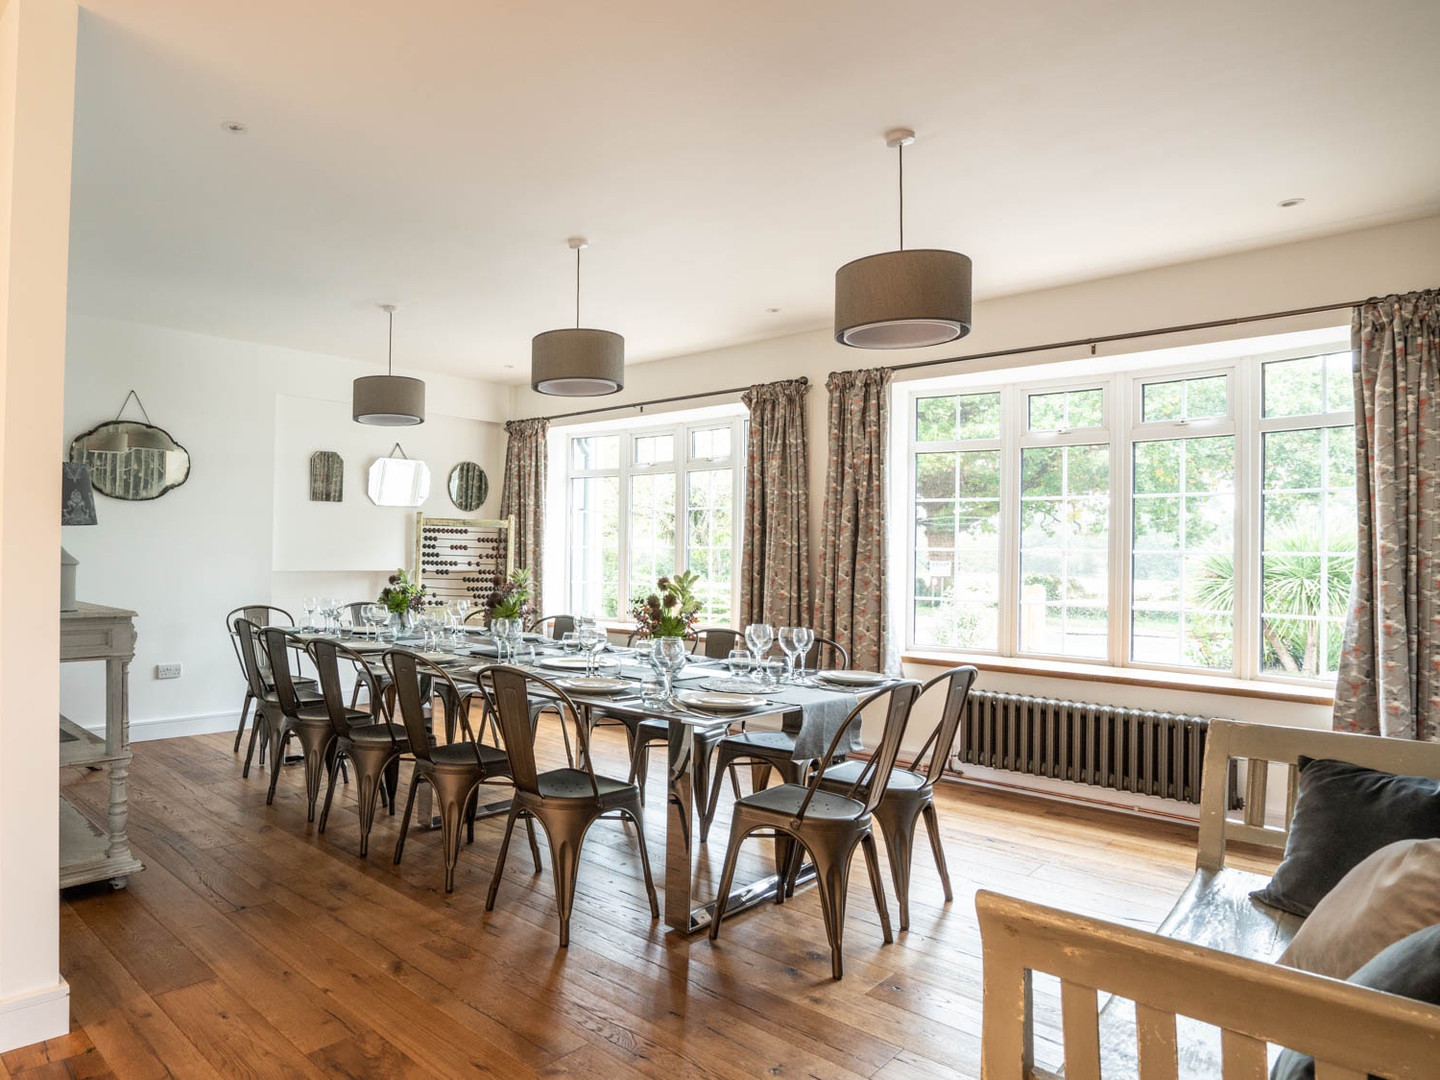 spacious and light dining room